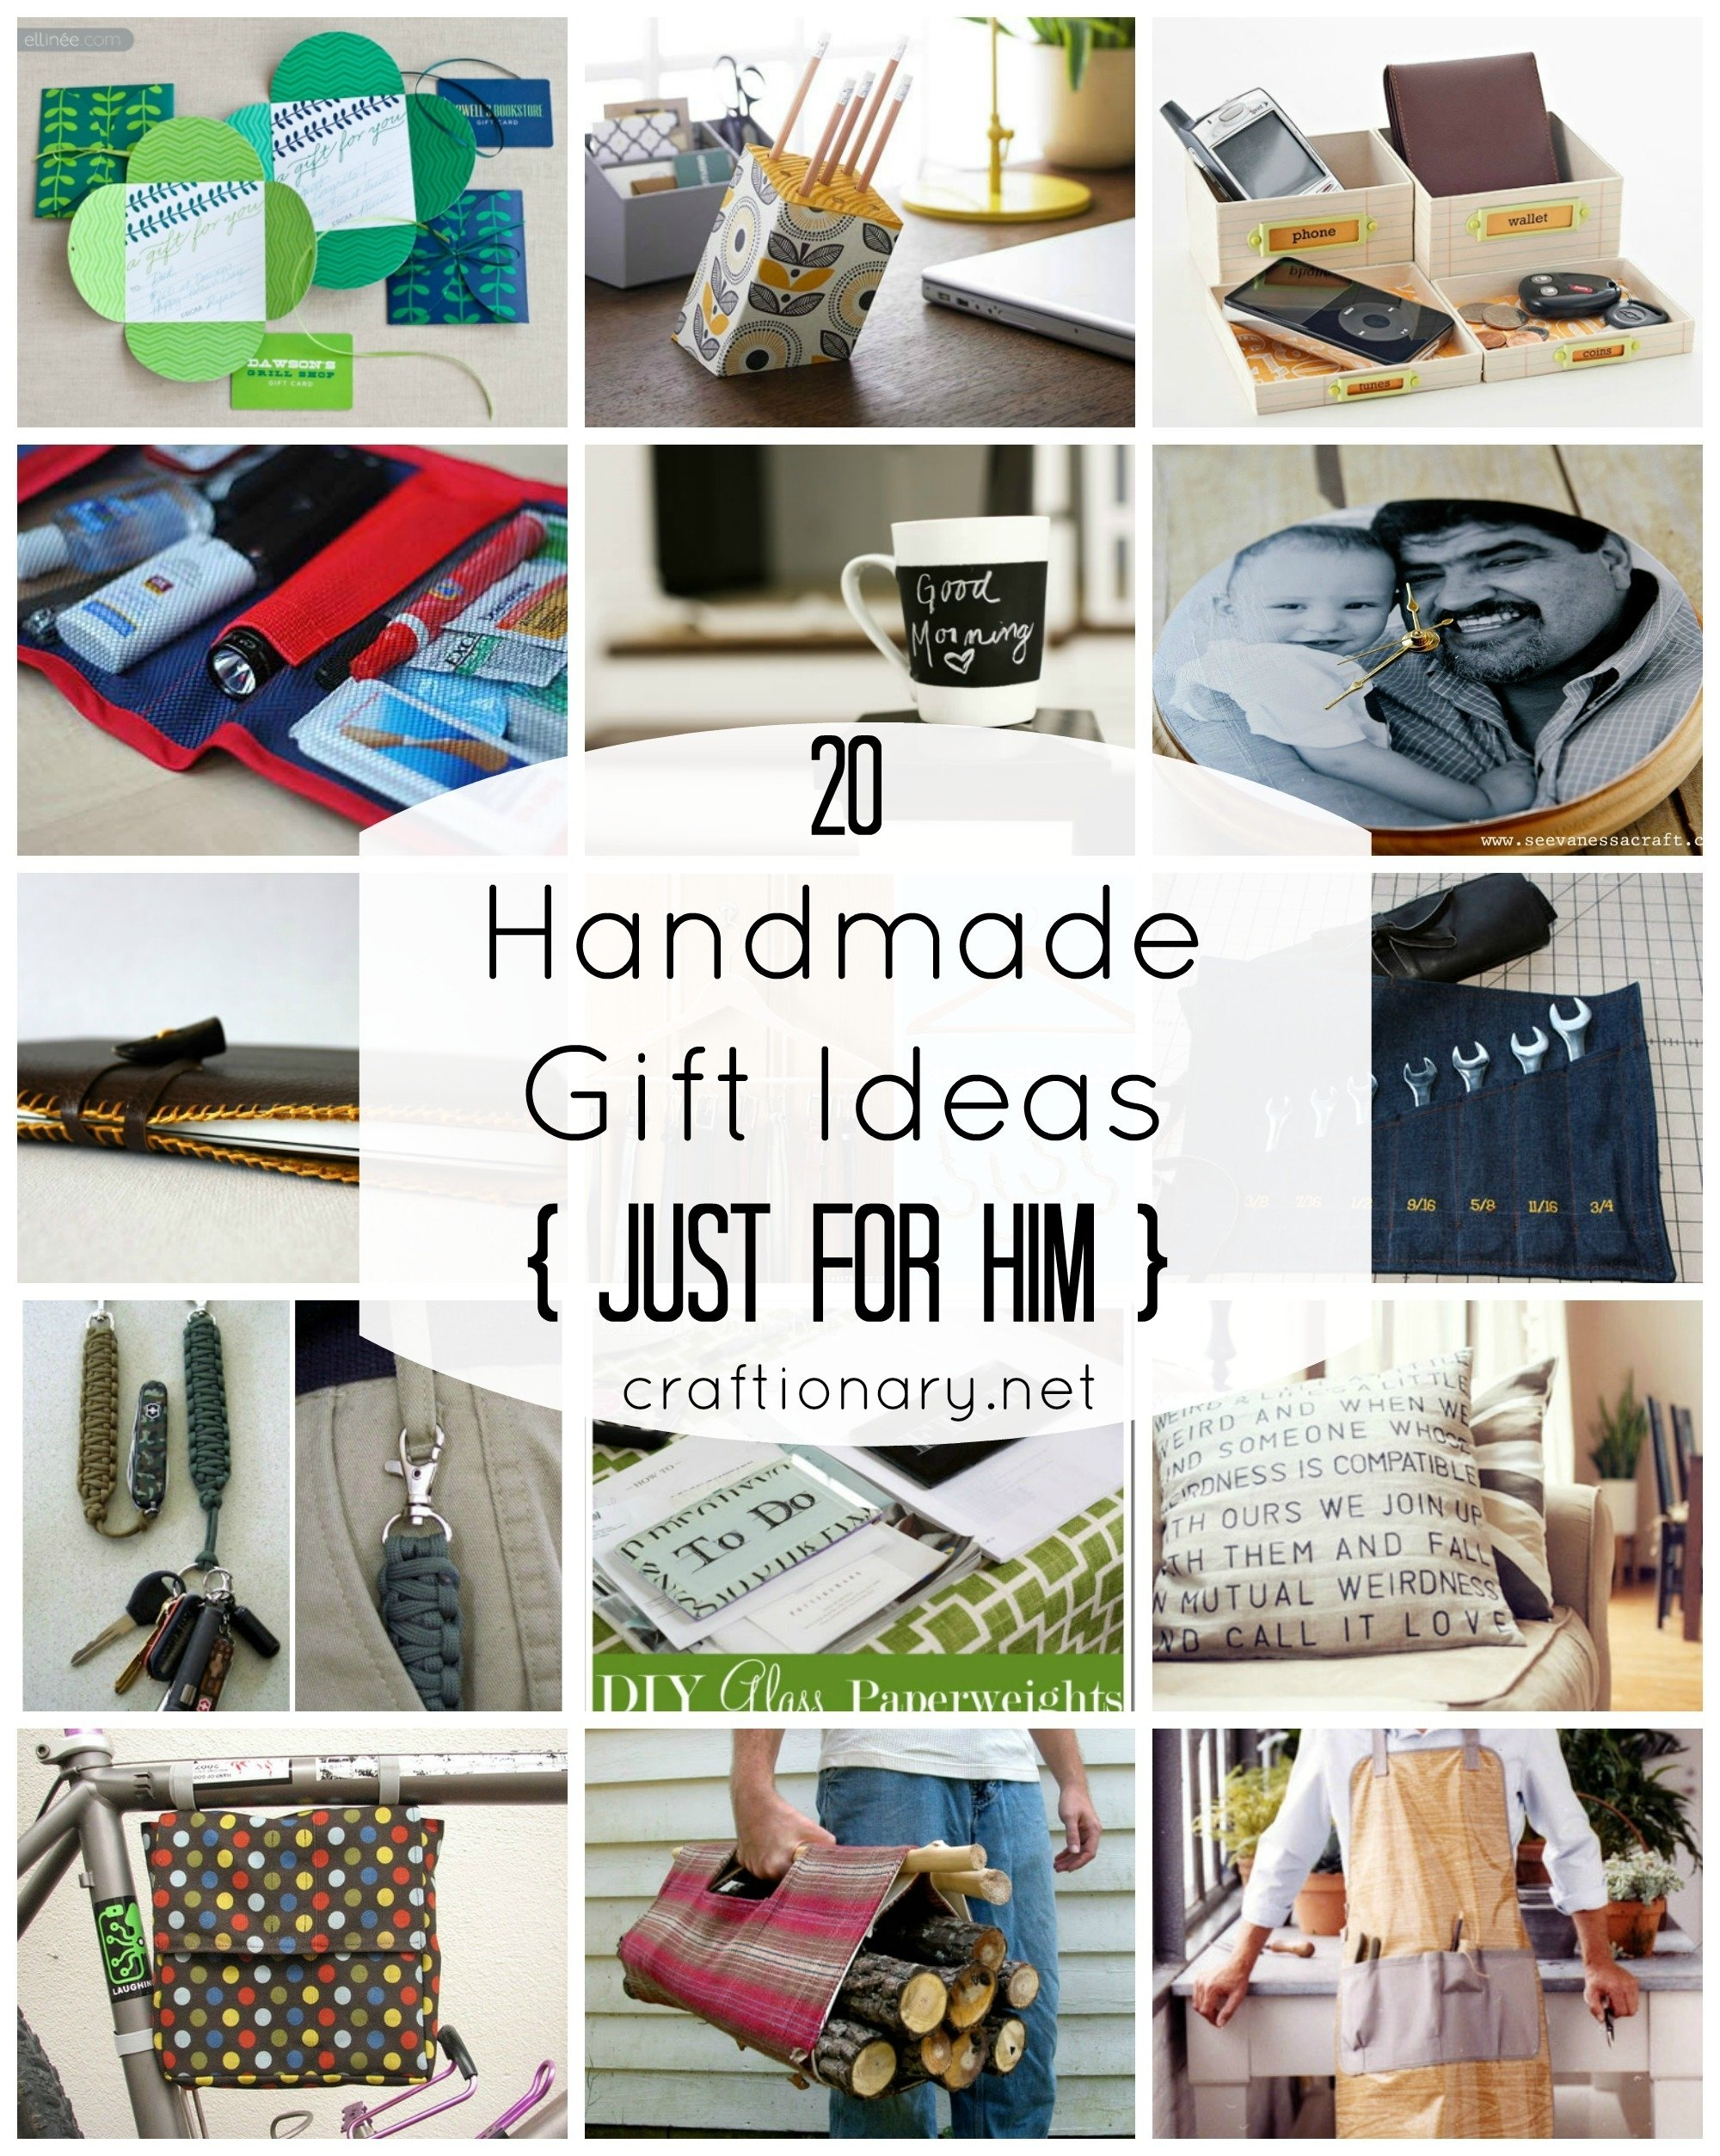 10 Nice Ideas For Gifts For Men craftionary 5 2021